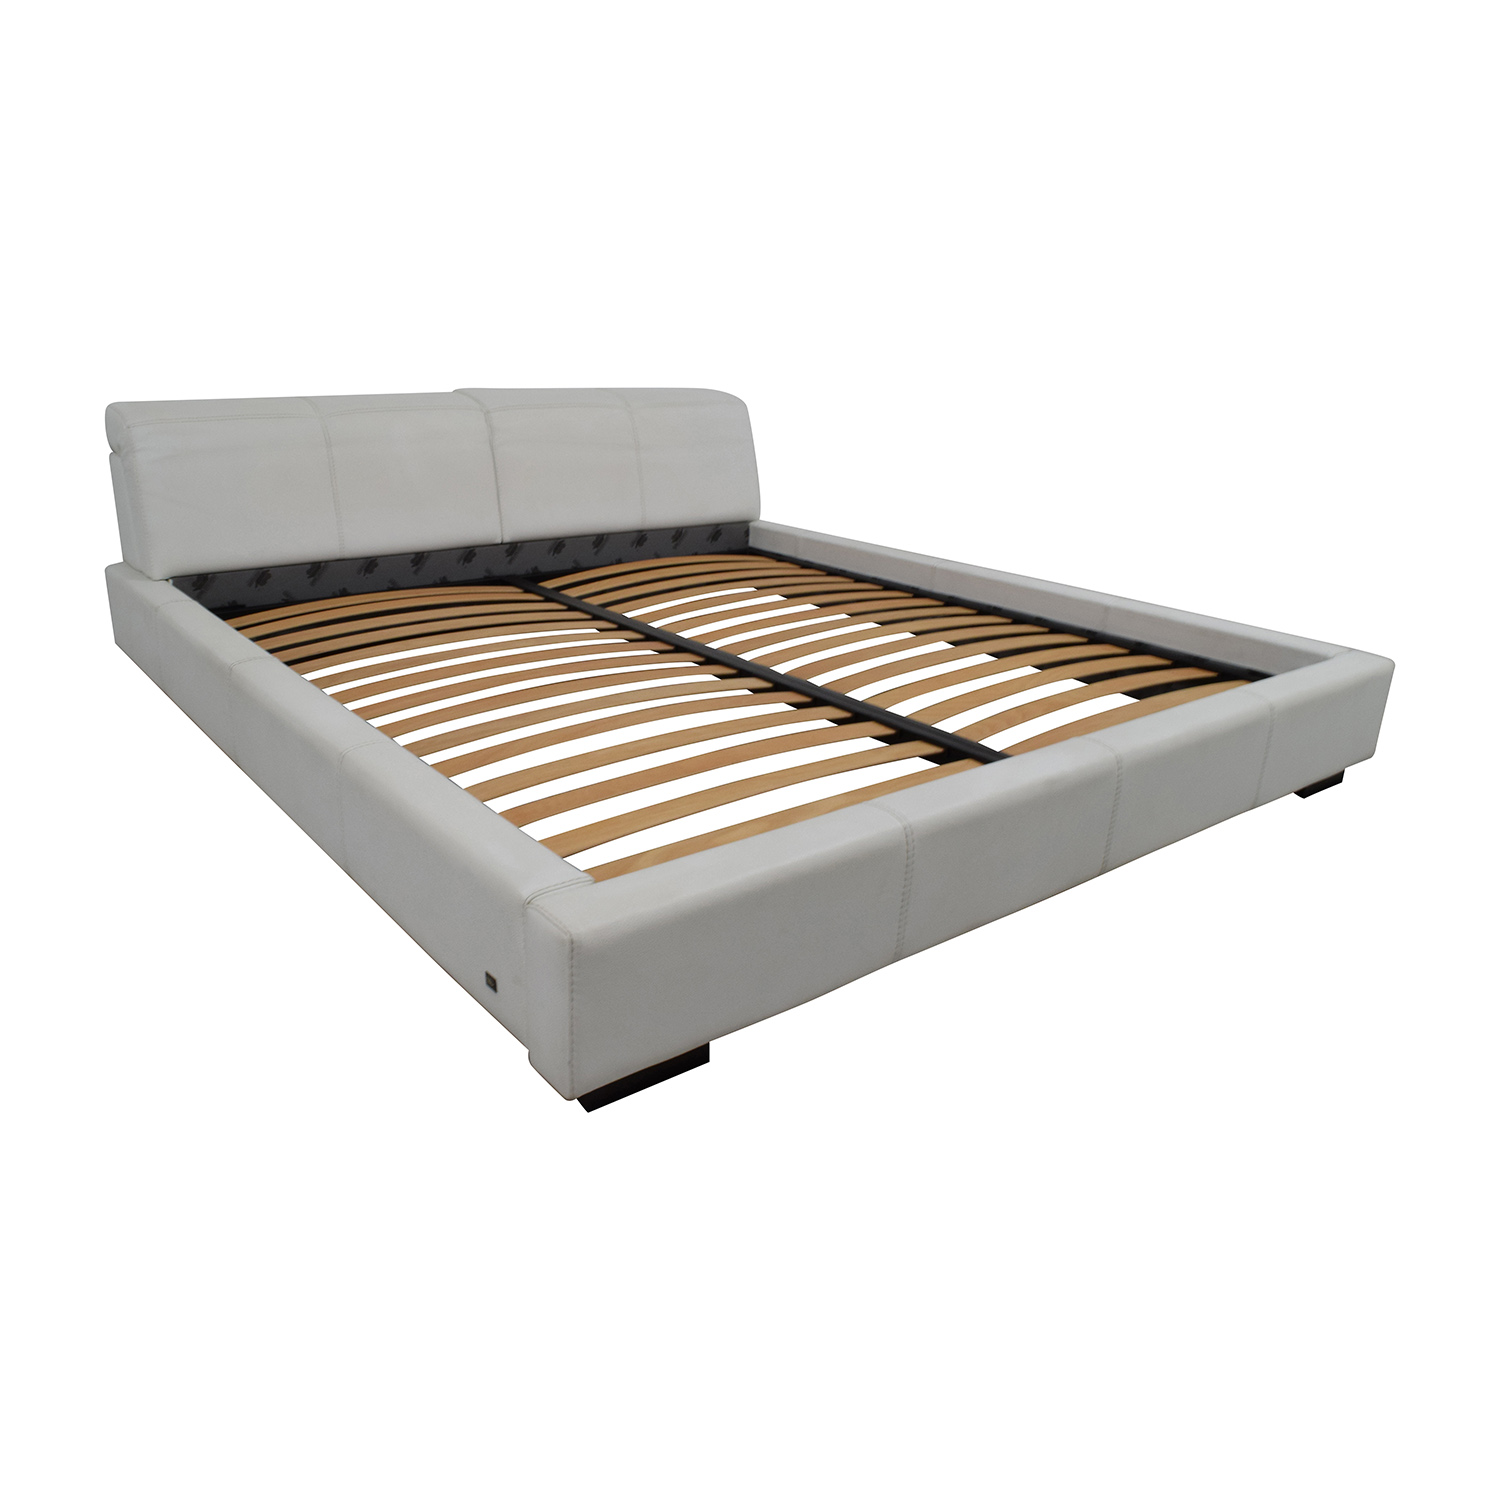 Paramount Gamma Arredamenti Leather Platform King Bed / Bed Frames